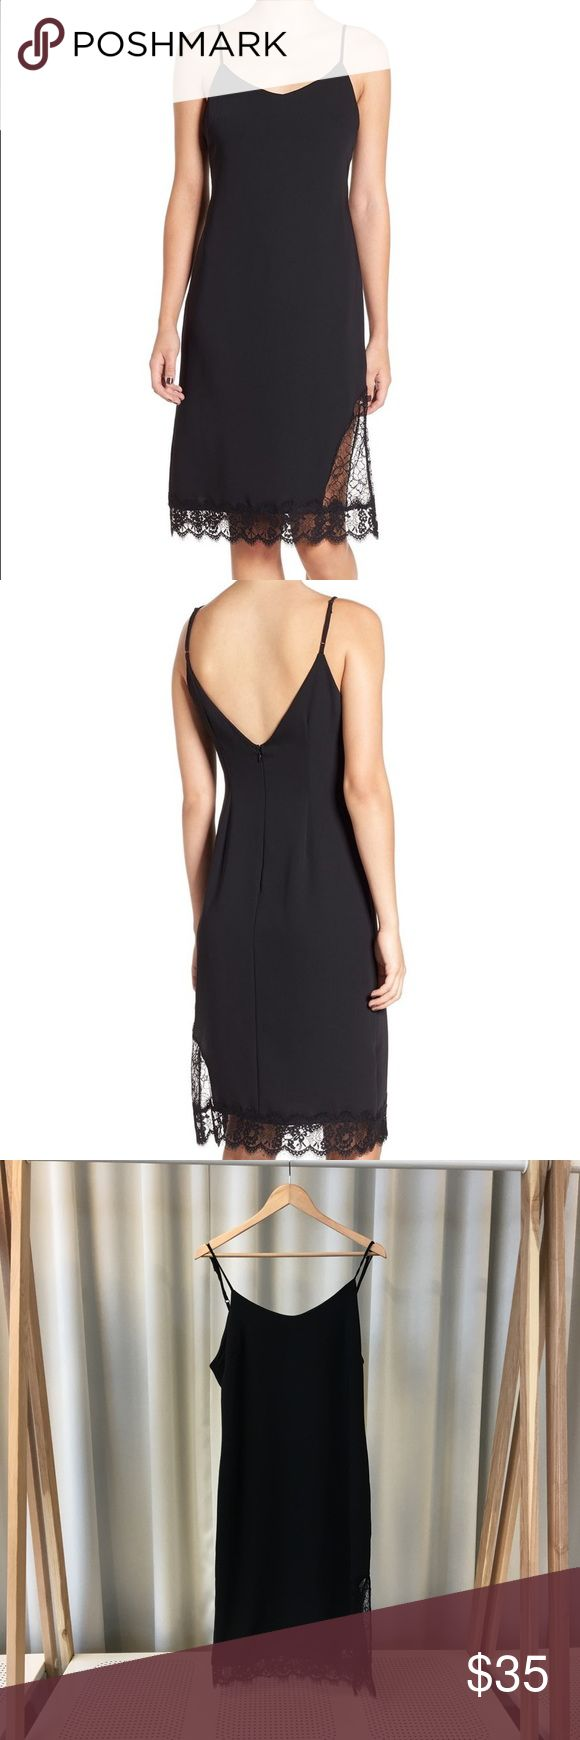 Leith Lace Hem Slip Dress Lightweight back slip dress with split hemline and delicate lace hem. Features a v neckline, adjustable straps, back zip closure, and is fully lined. 100% polyester. Label is Leith, from Nordstrom. Please carefully review each photo before purchase as they are the best descriptors of the item. My price is firm. No trades. First come, first served. Thank you! :) Nordstrom Dresses Midi